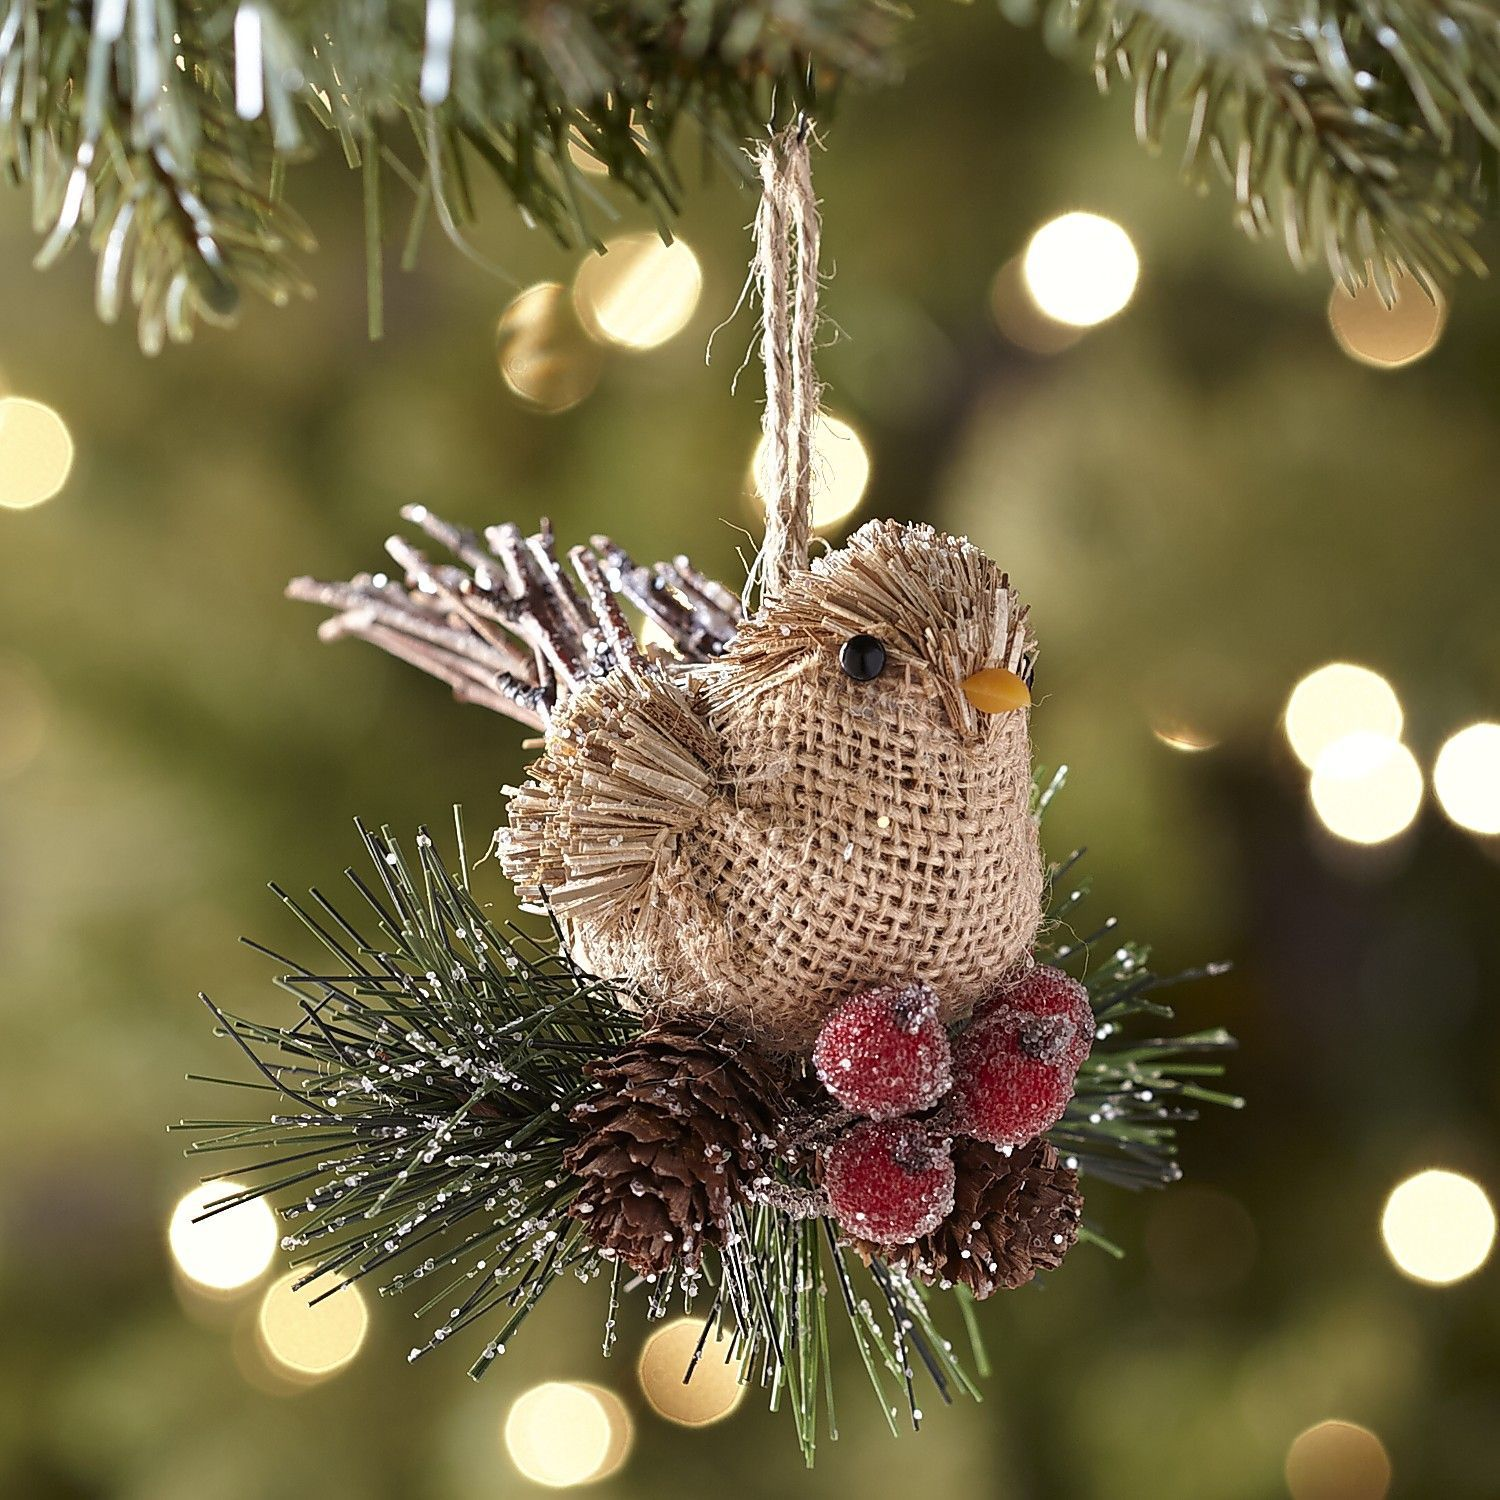 Burlap bird ornaments - Pier 1 Imports Natural Burlap Bird Ornament 4 95